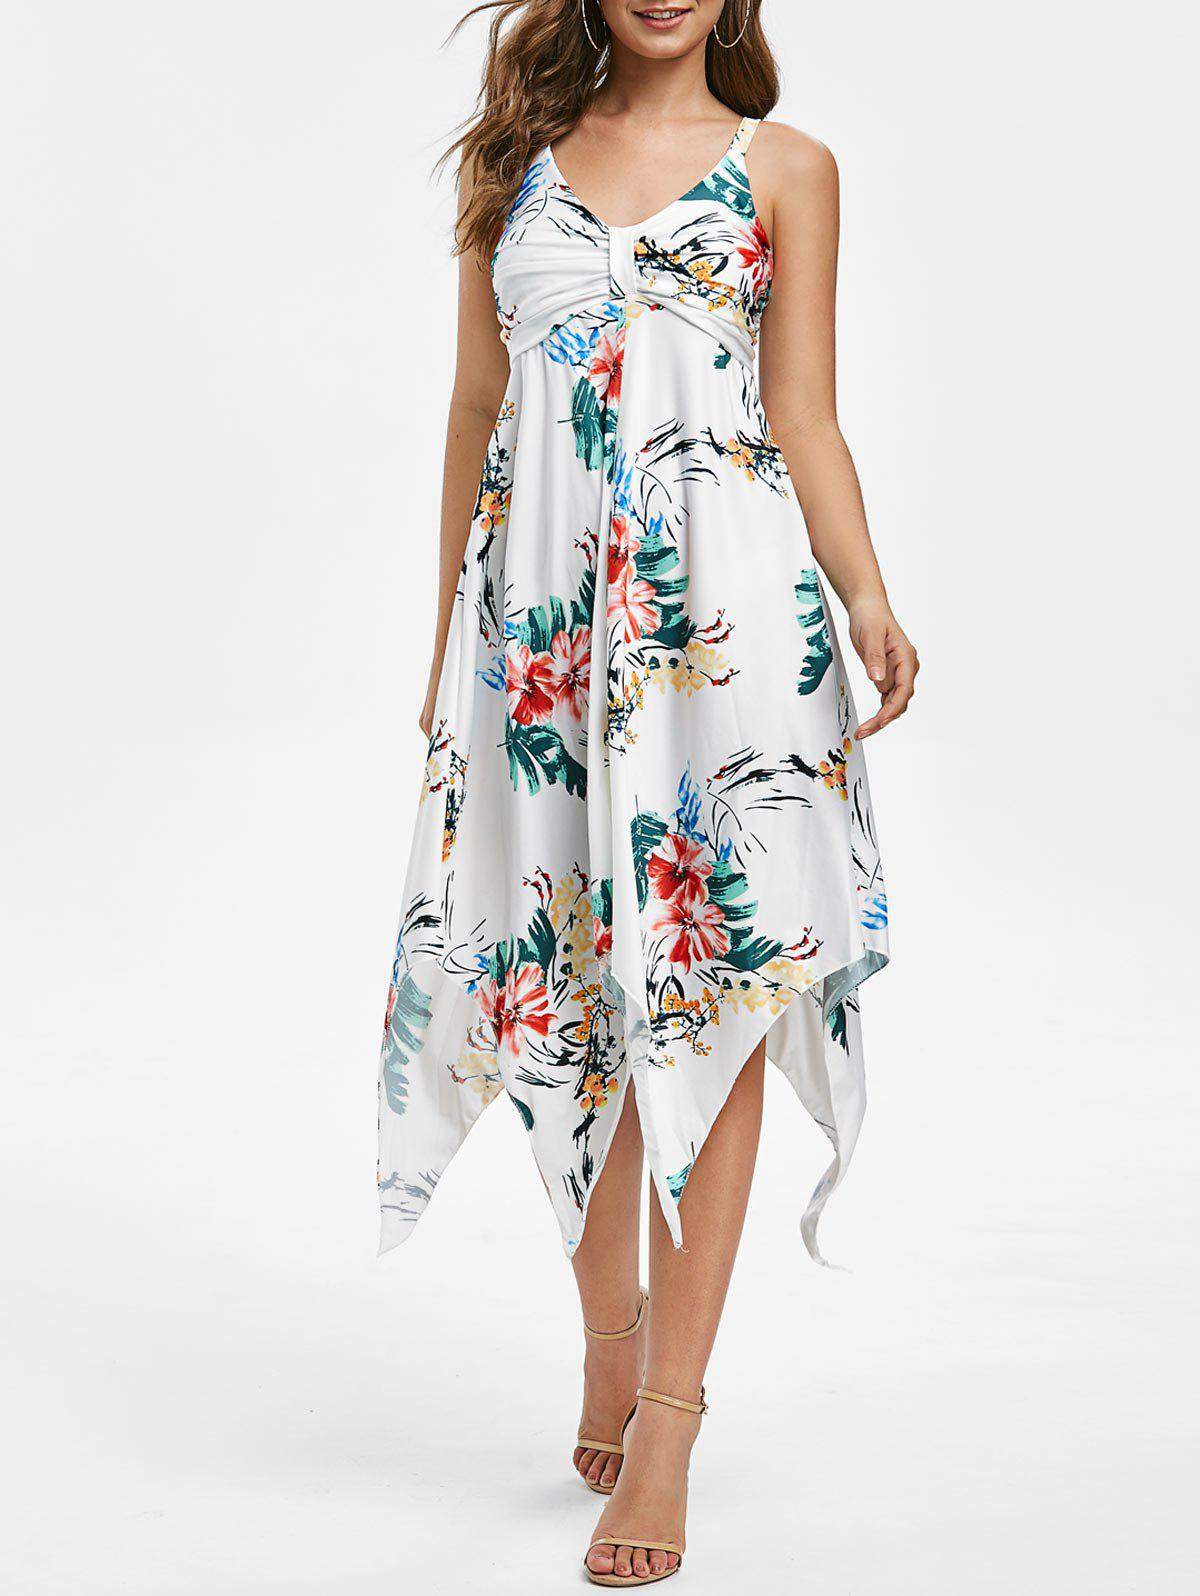 Discount Floral Print Empire Waist Asymmetric Dress